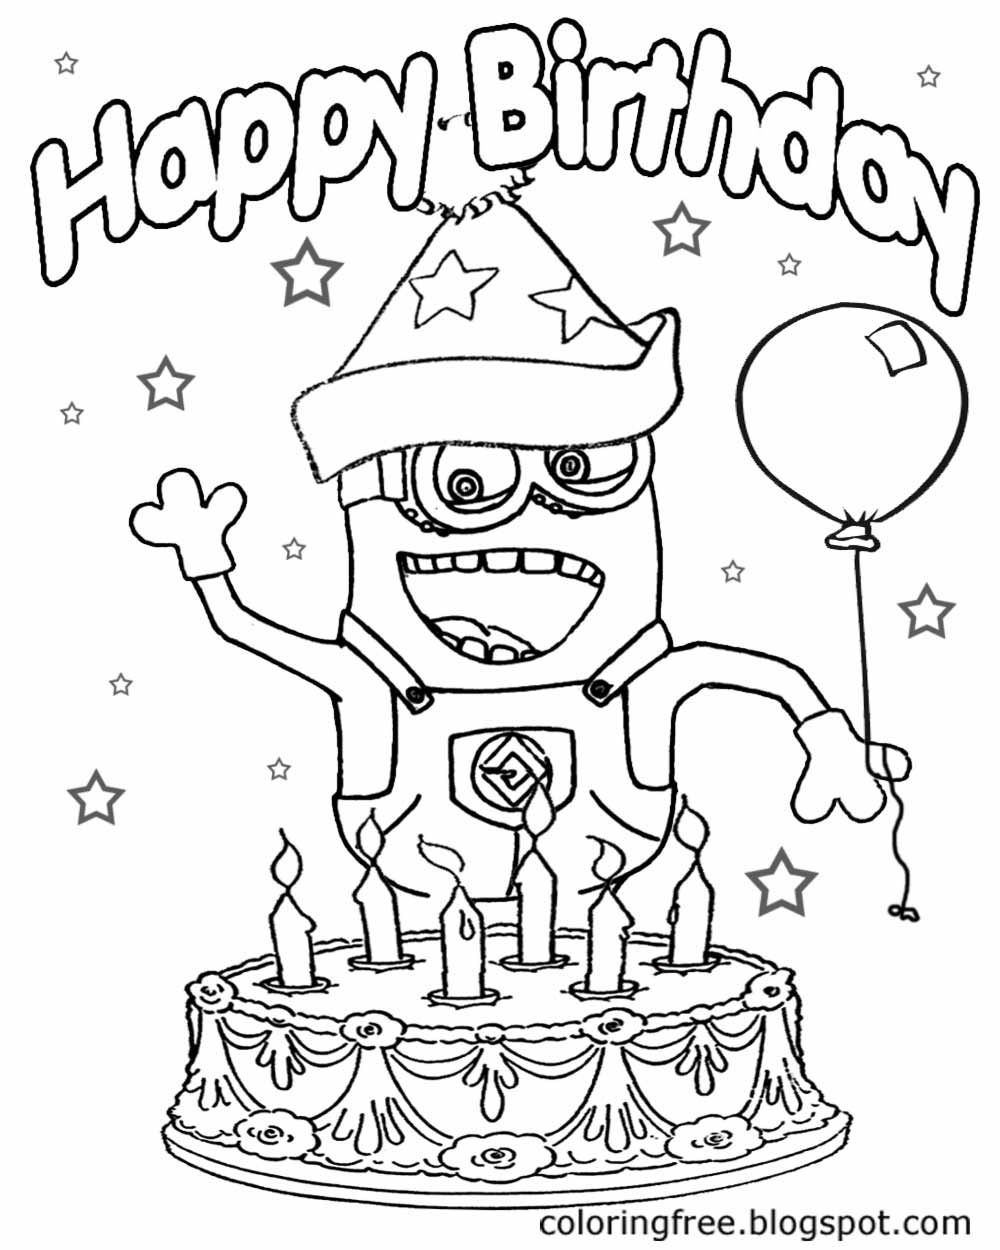 Minion Birthday Coloring Pages   Coloring pages allow kids ...